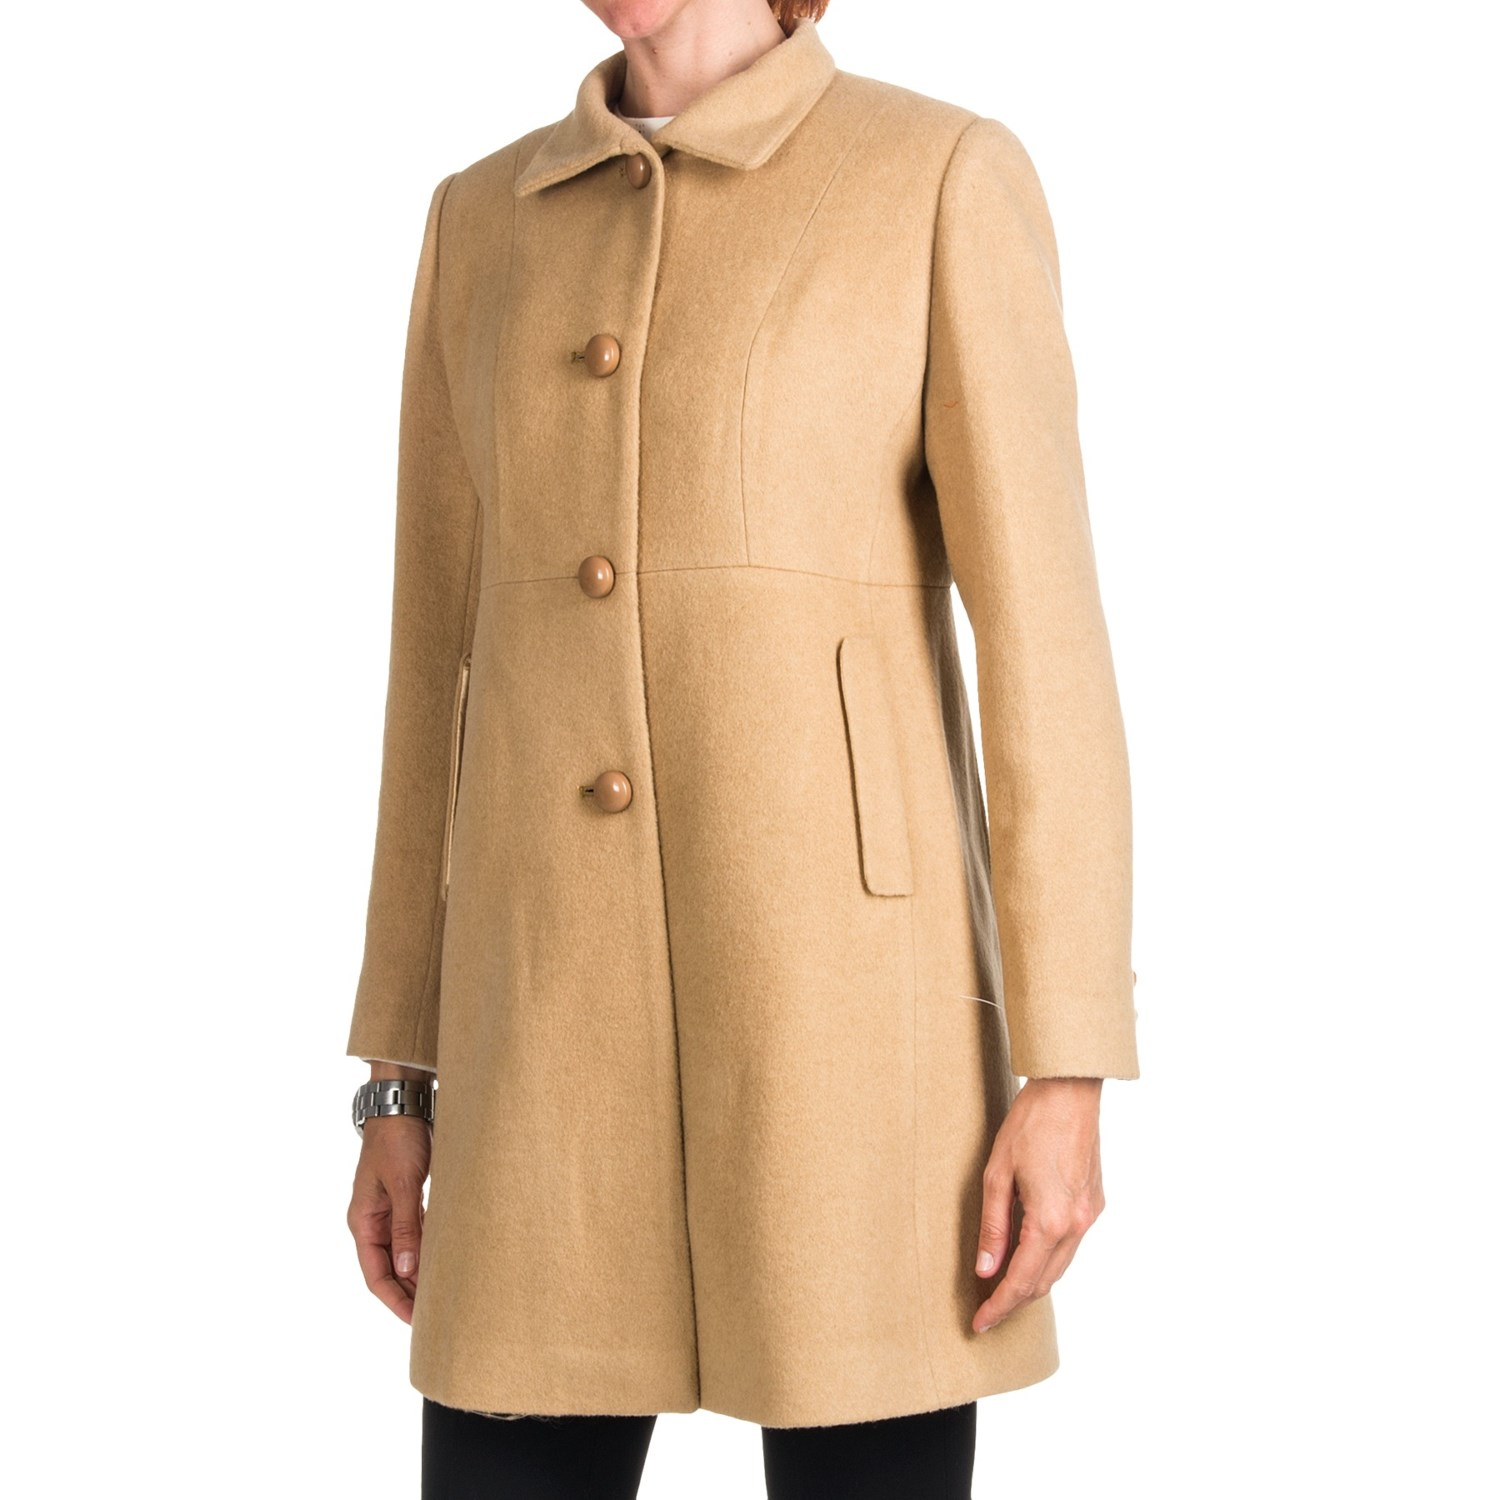 Camel Hair Coats Women ($ - $3,): 30 of items - Shop Camel Hair Coats Women from ALL your favorite stores & find HUGE SAVINGS up to 80% off Camel Hair Coats Women, including GREAT DEALS like Larry Levine Design Jackets & Coats   Larry Levine Design % Camel Hair Lined Coat 14   Color: Tan   Size: 14 ($).